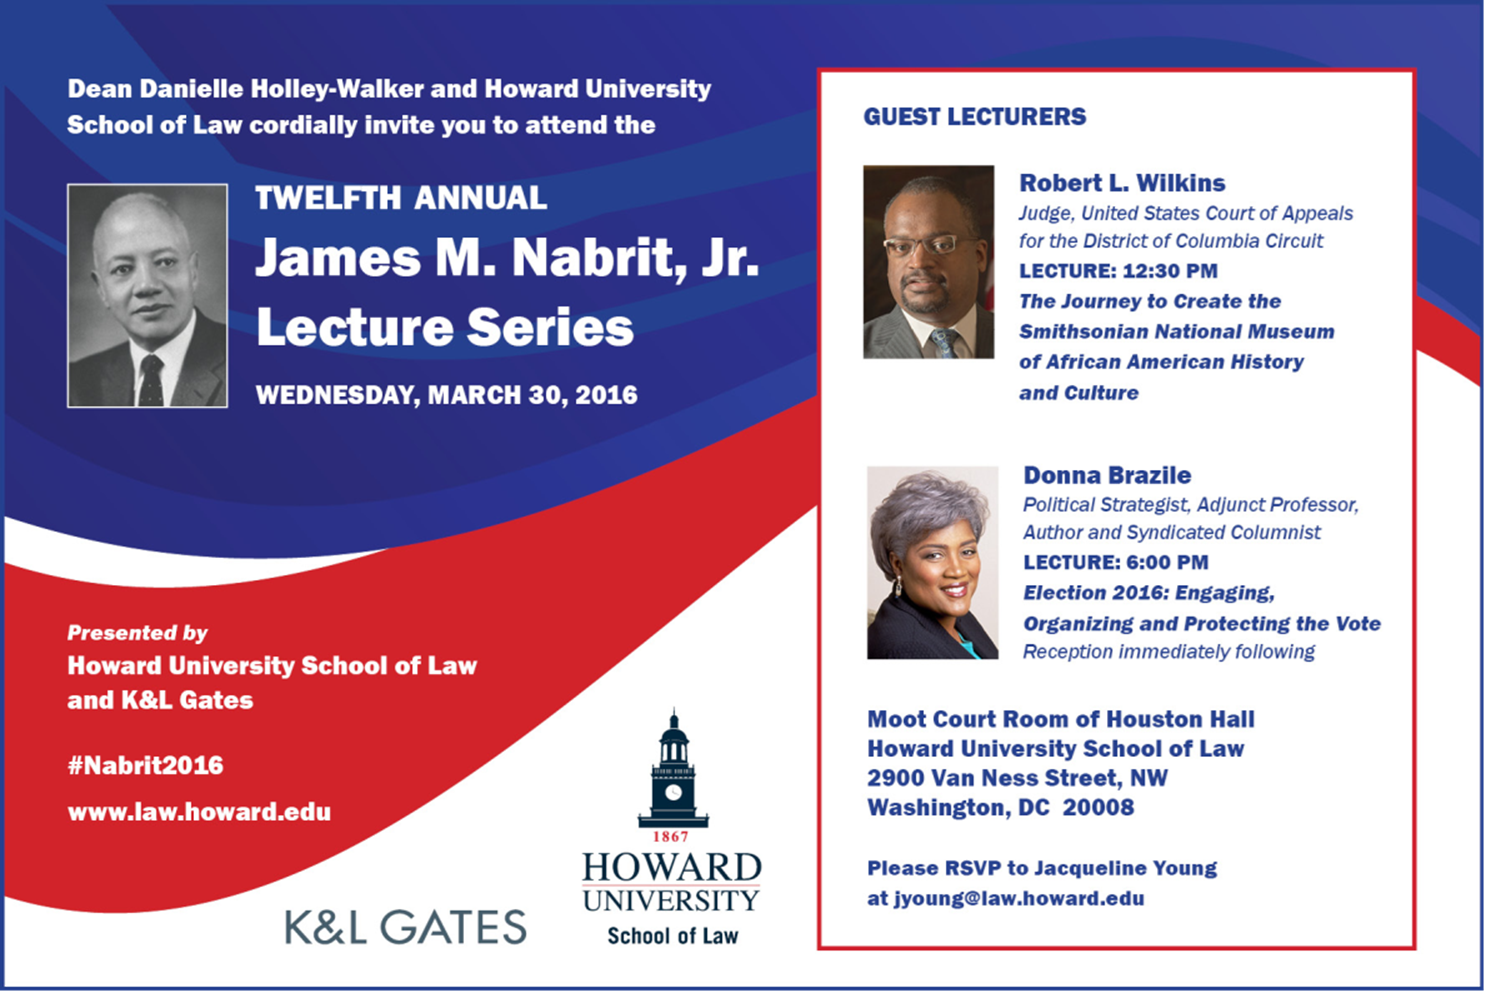 Twelfth Annual James Nabrit, Jr. Lecture Series